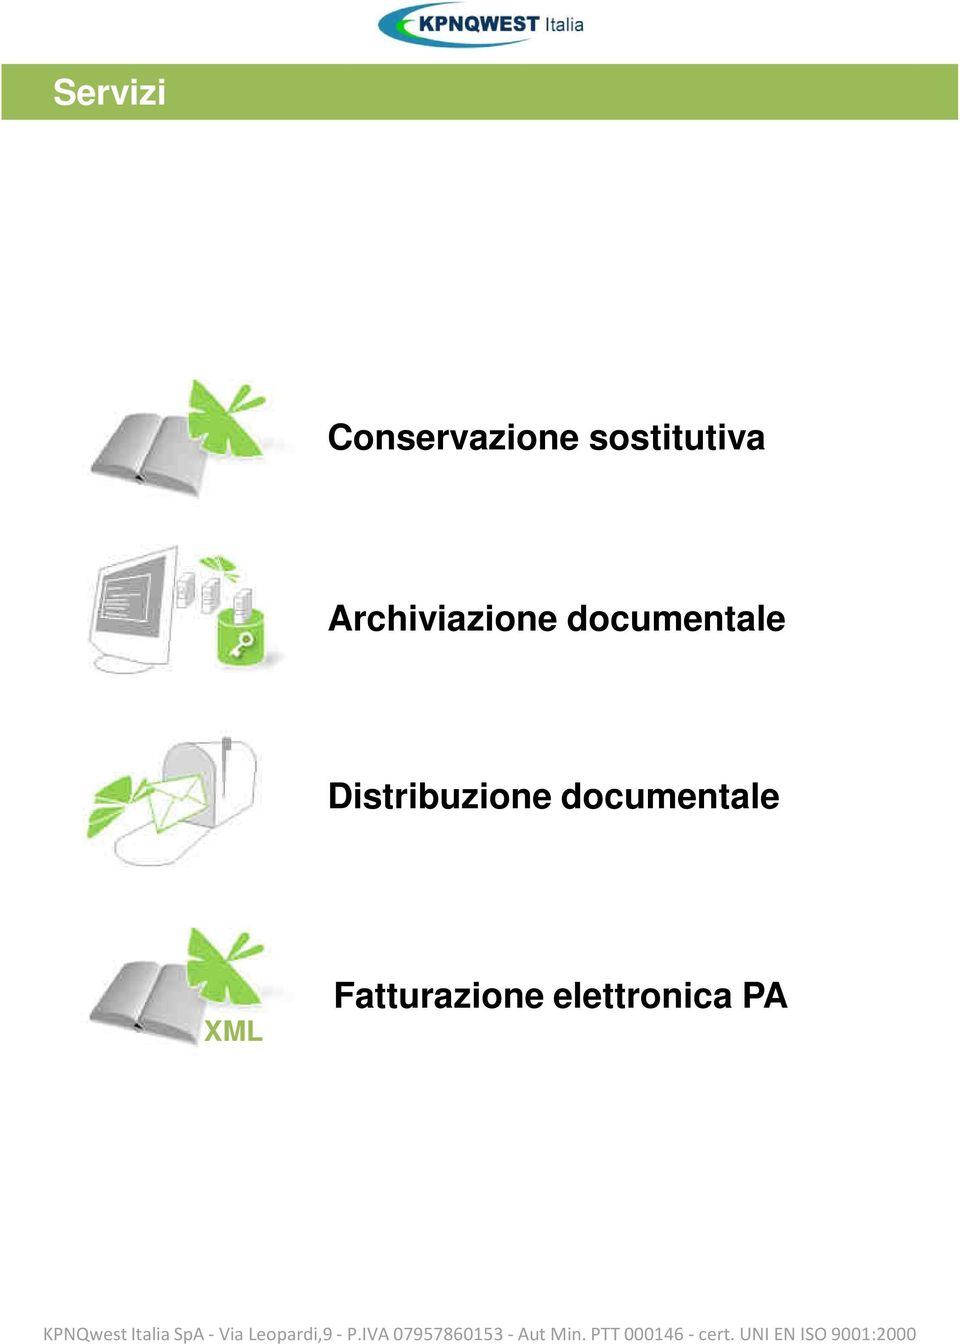 documentale Distribuzione